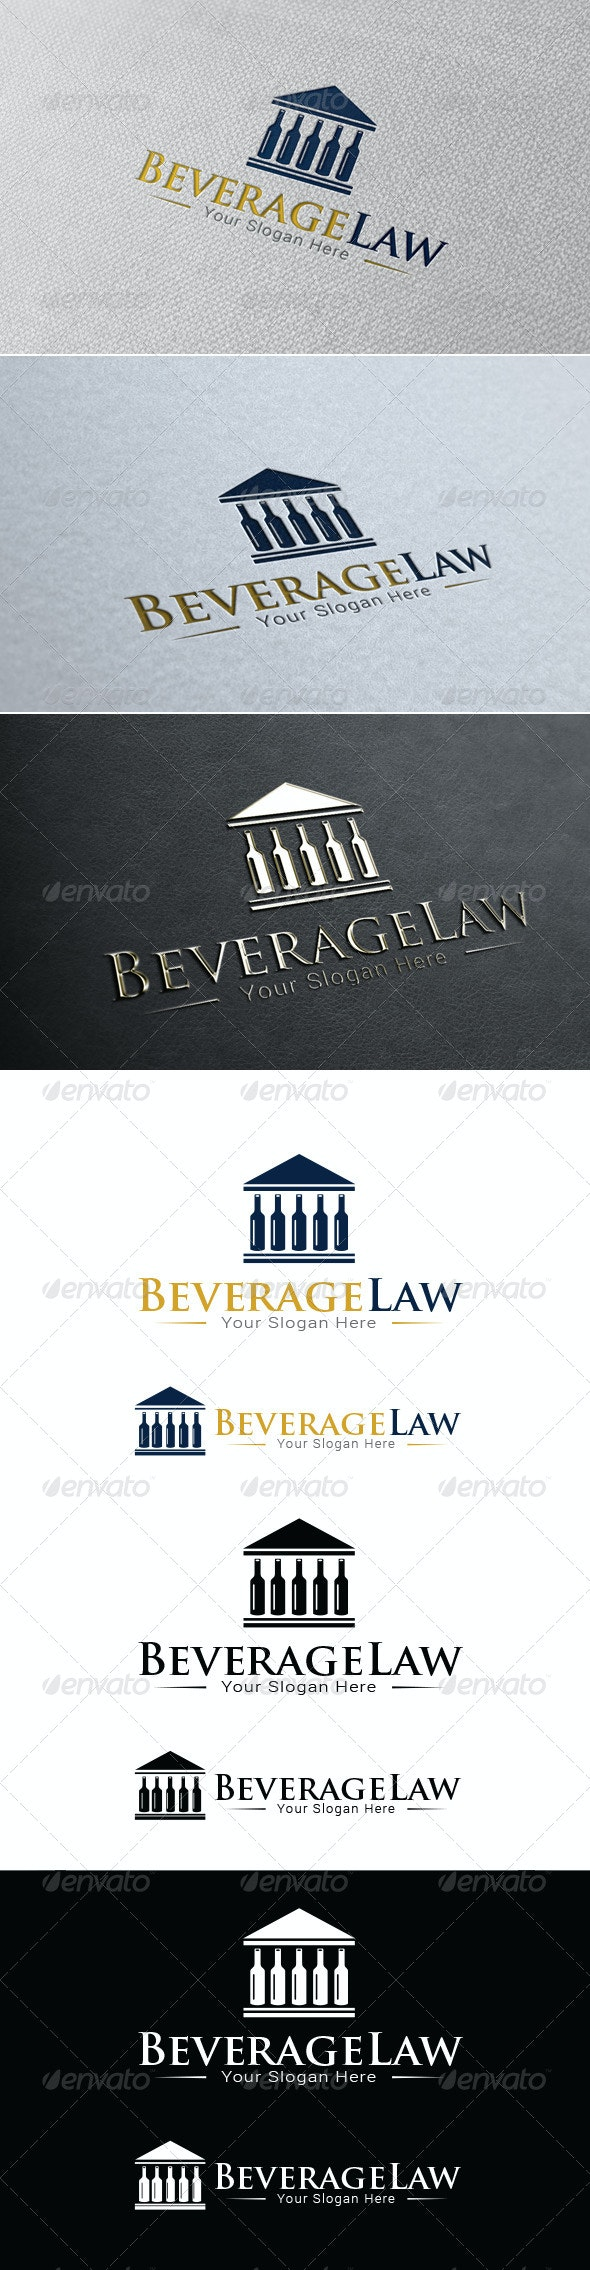 Beverage Law Firm Logo Template - Symbols Logo Templates